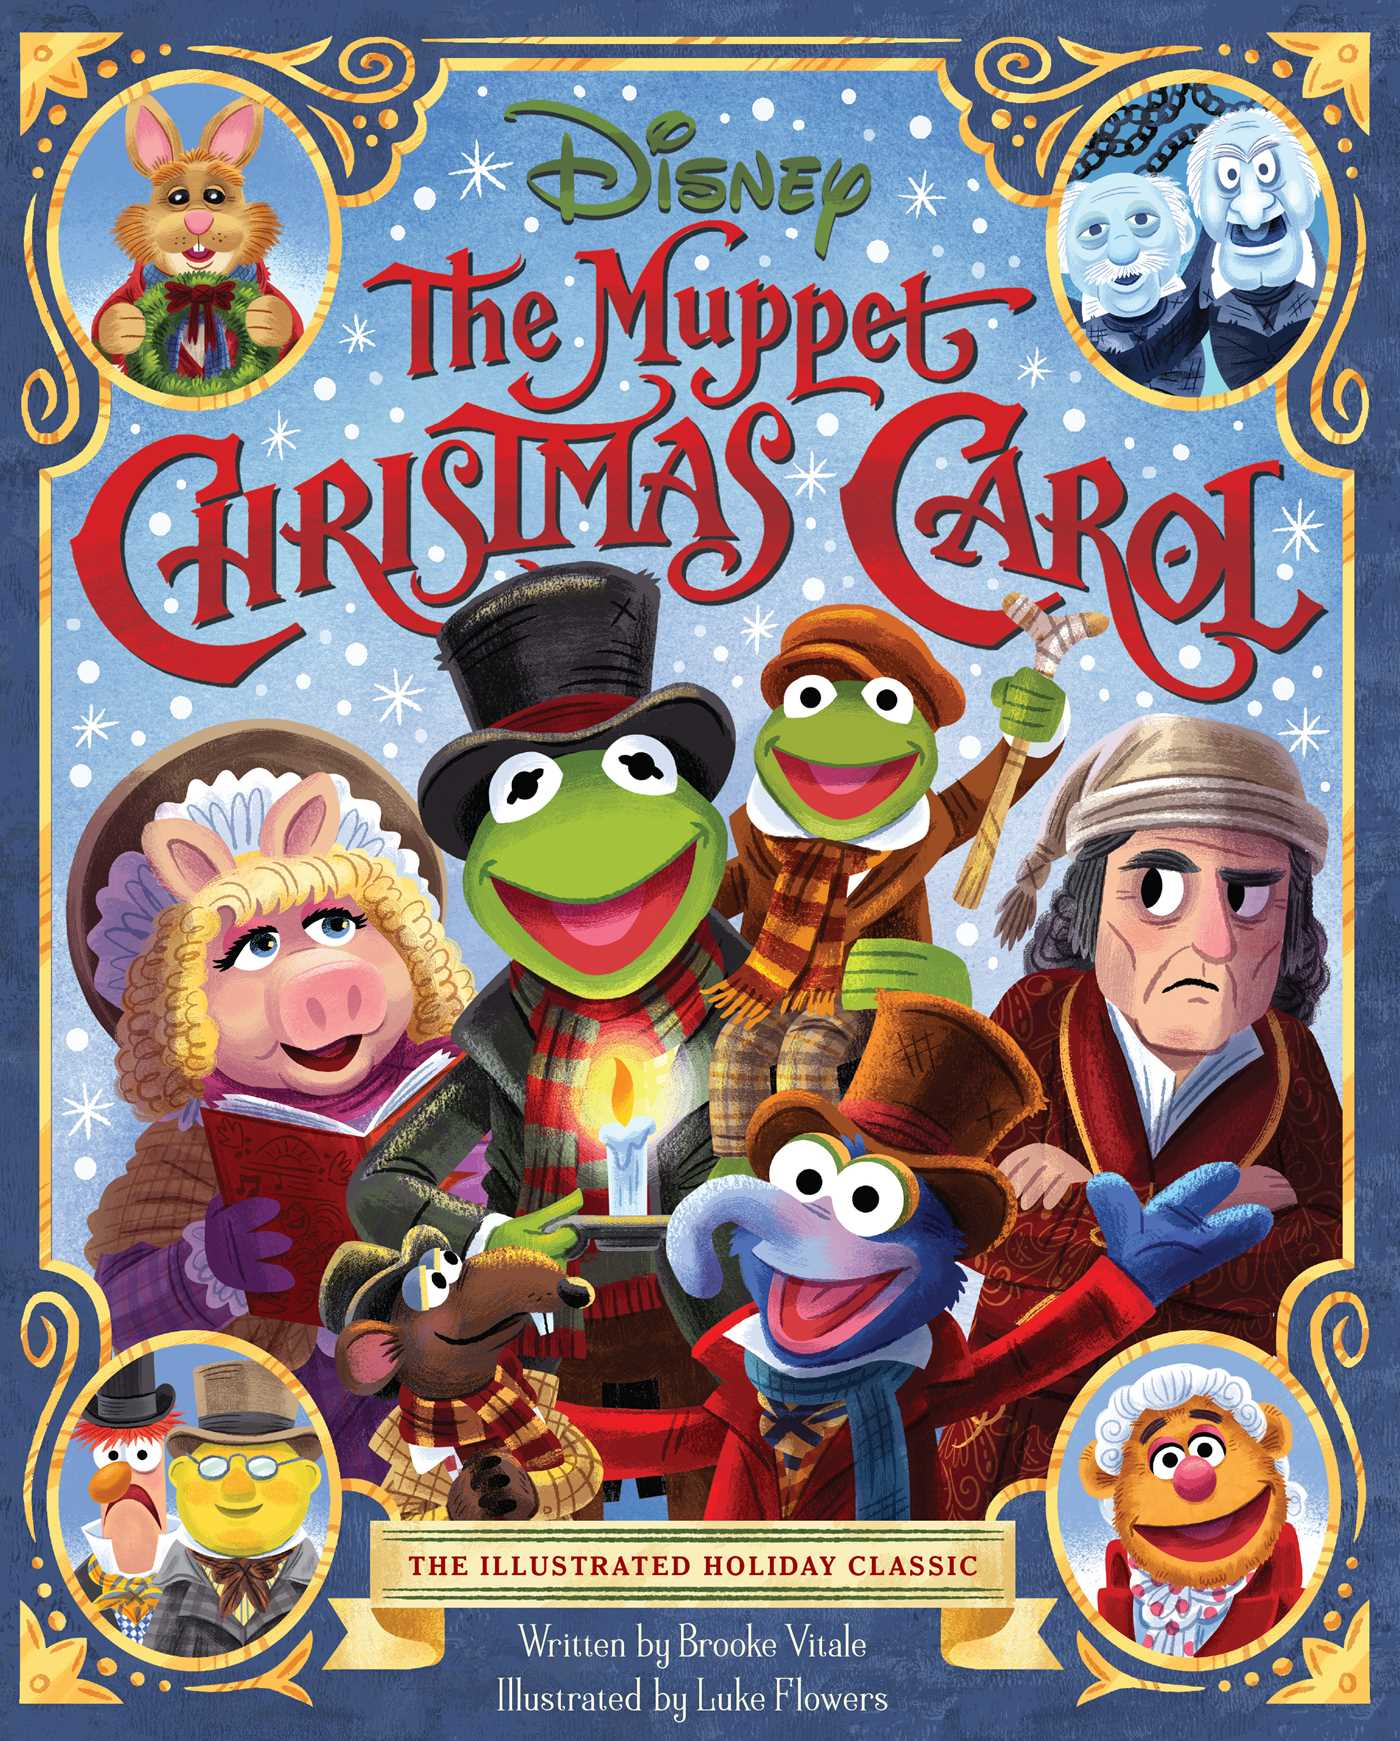 The Muppet Christmas Carol | Book by Brooke Vitale, Luke Flowers | Official Publisher Page ...